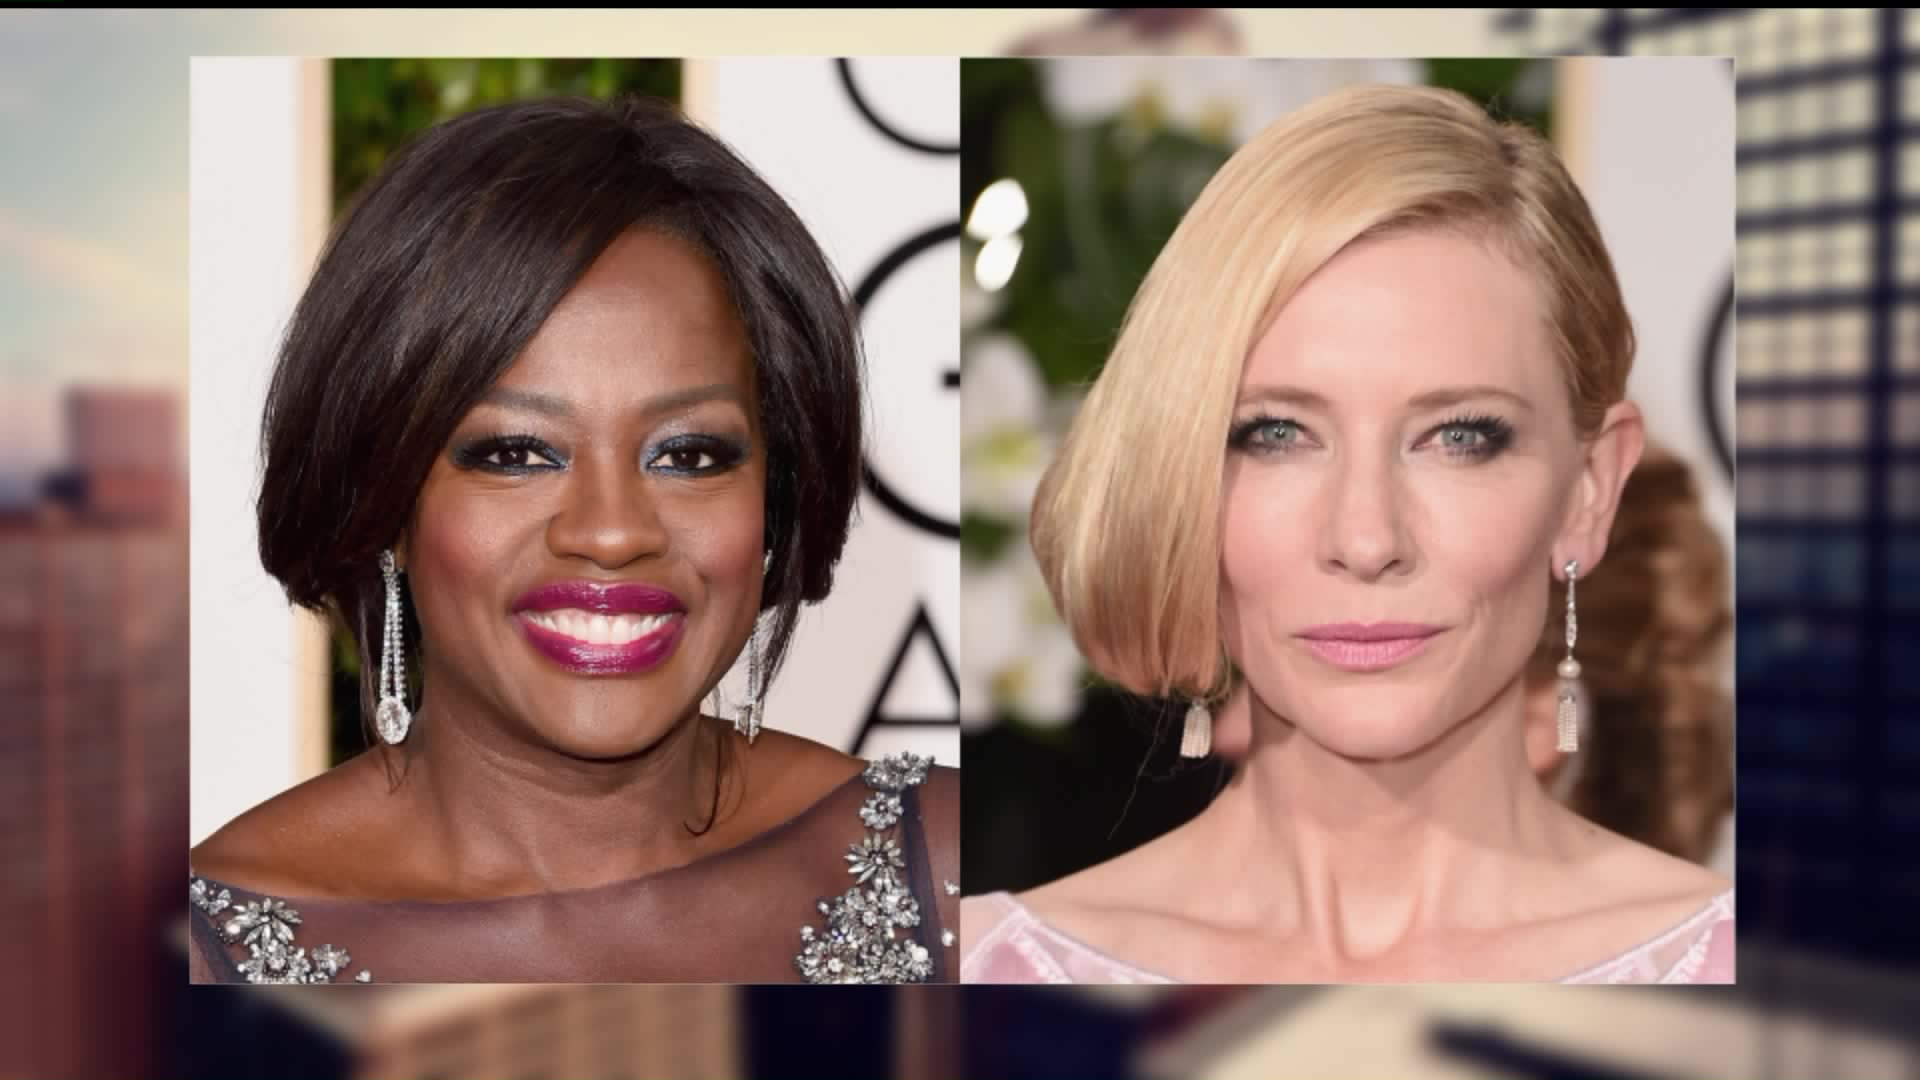 11 Tricks Makeup Artists Use On The Red Carpet That You Can Use At Home | HuffPost Life